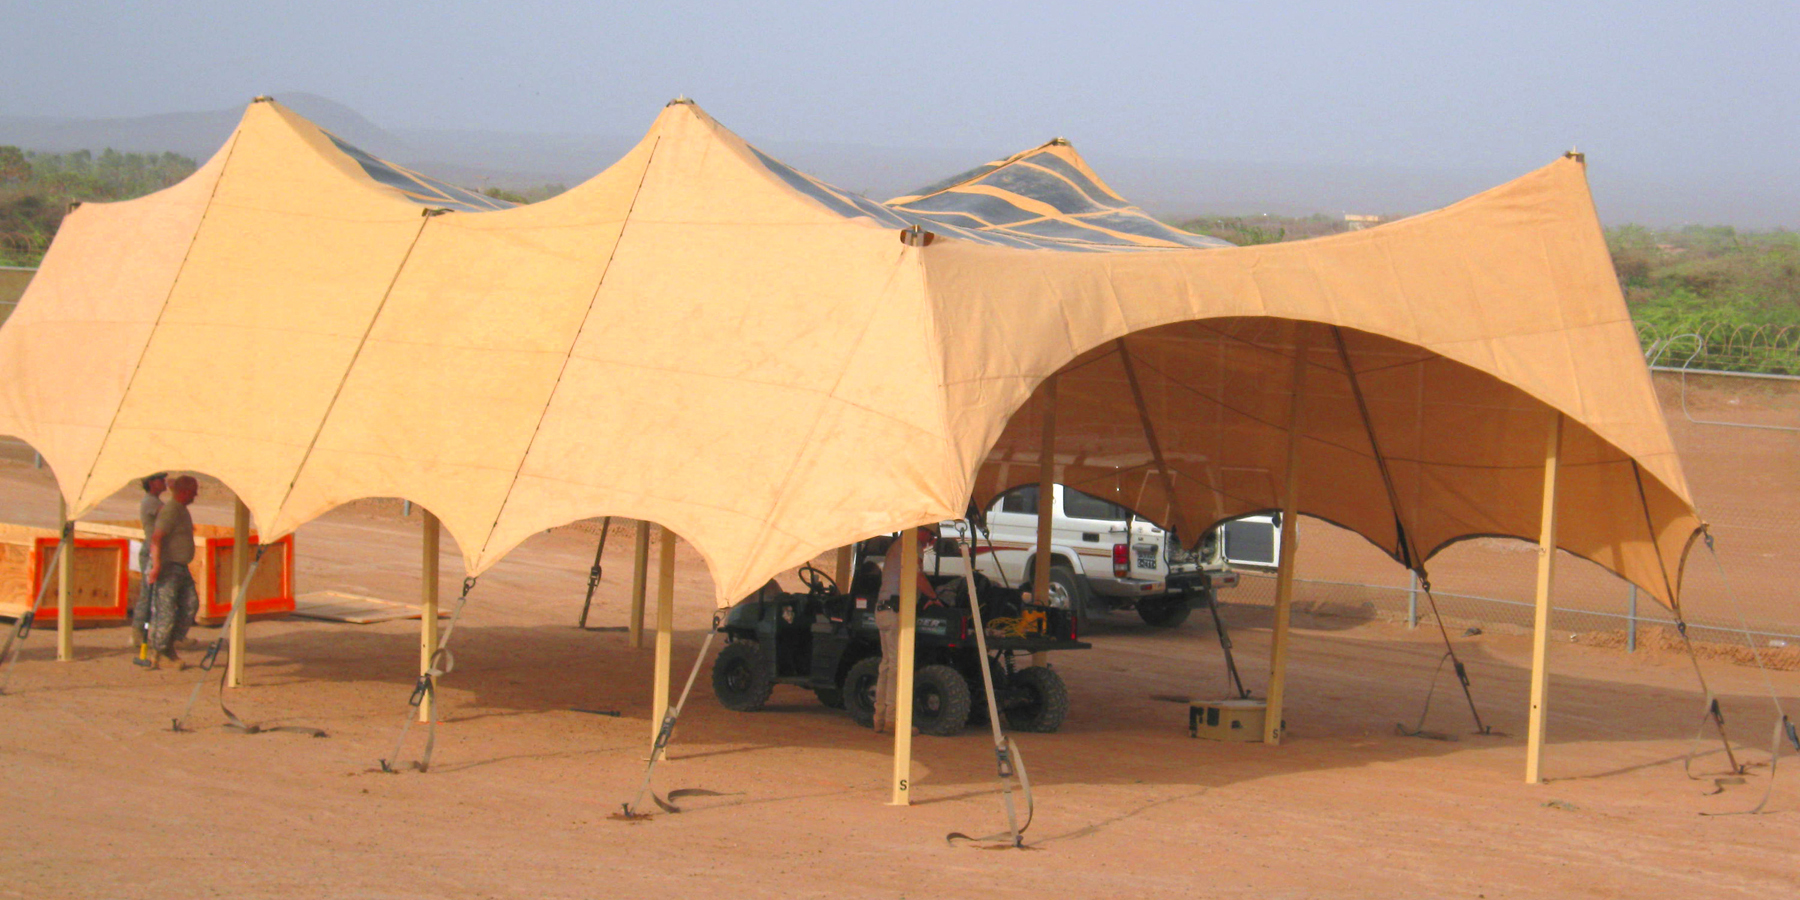 Flexible solar panels have greater utility than their rigid   counterparts,   and can be used in a wider variety of scenarios, such as on tents.   Wikimedia Commons  (public domain)